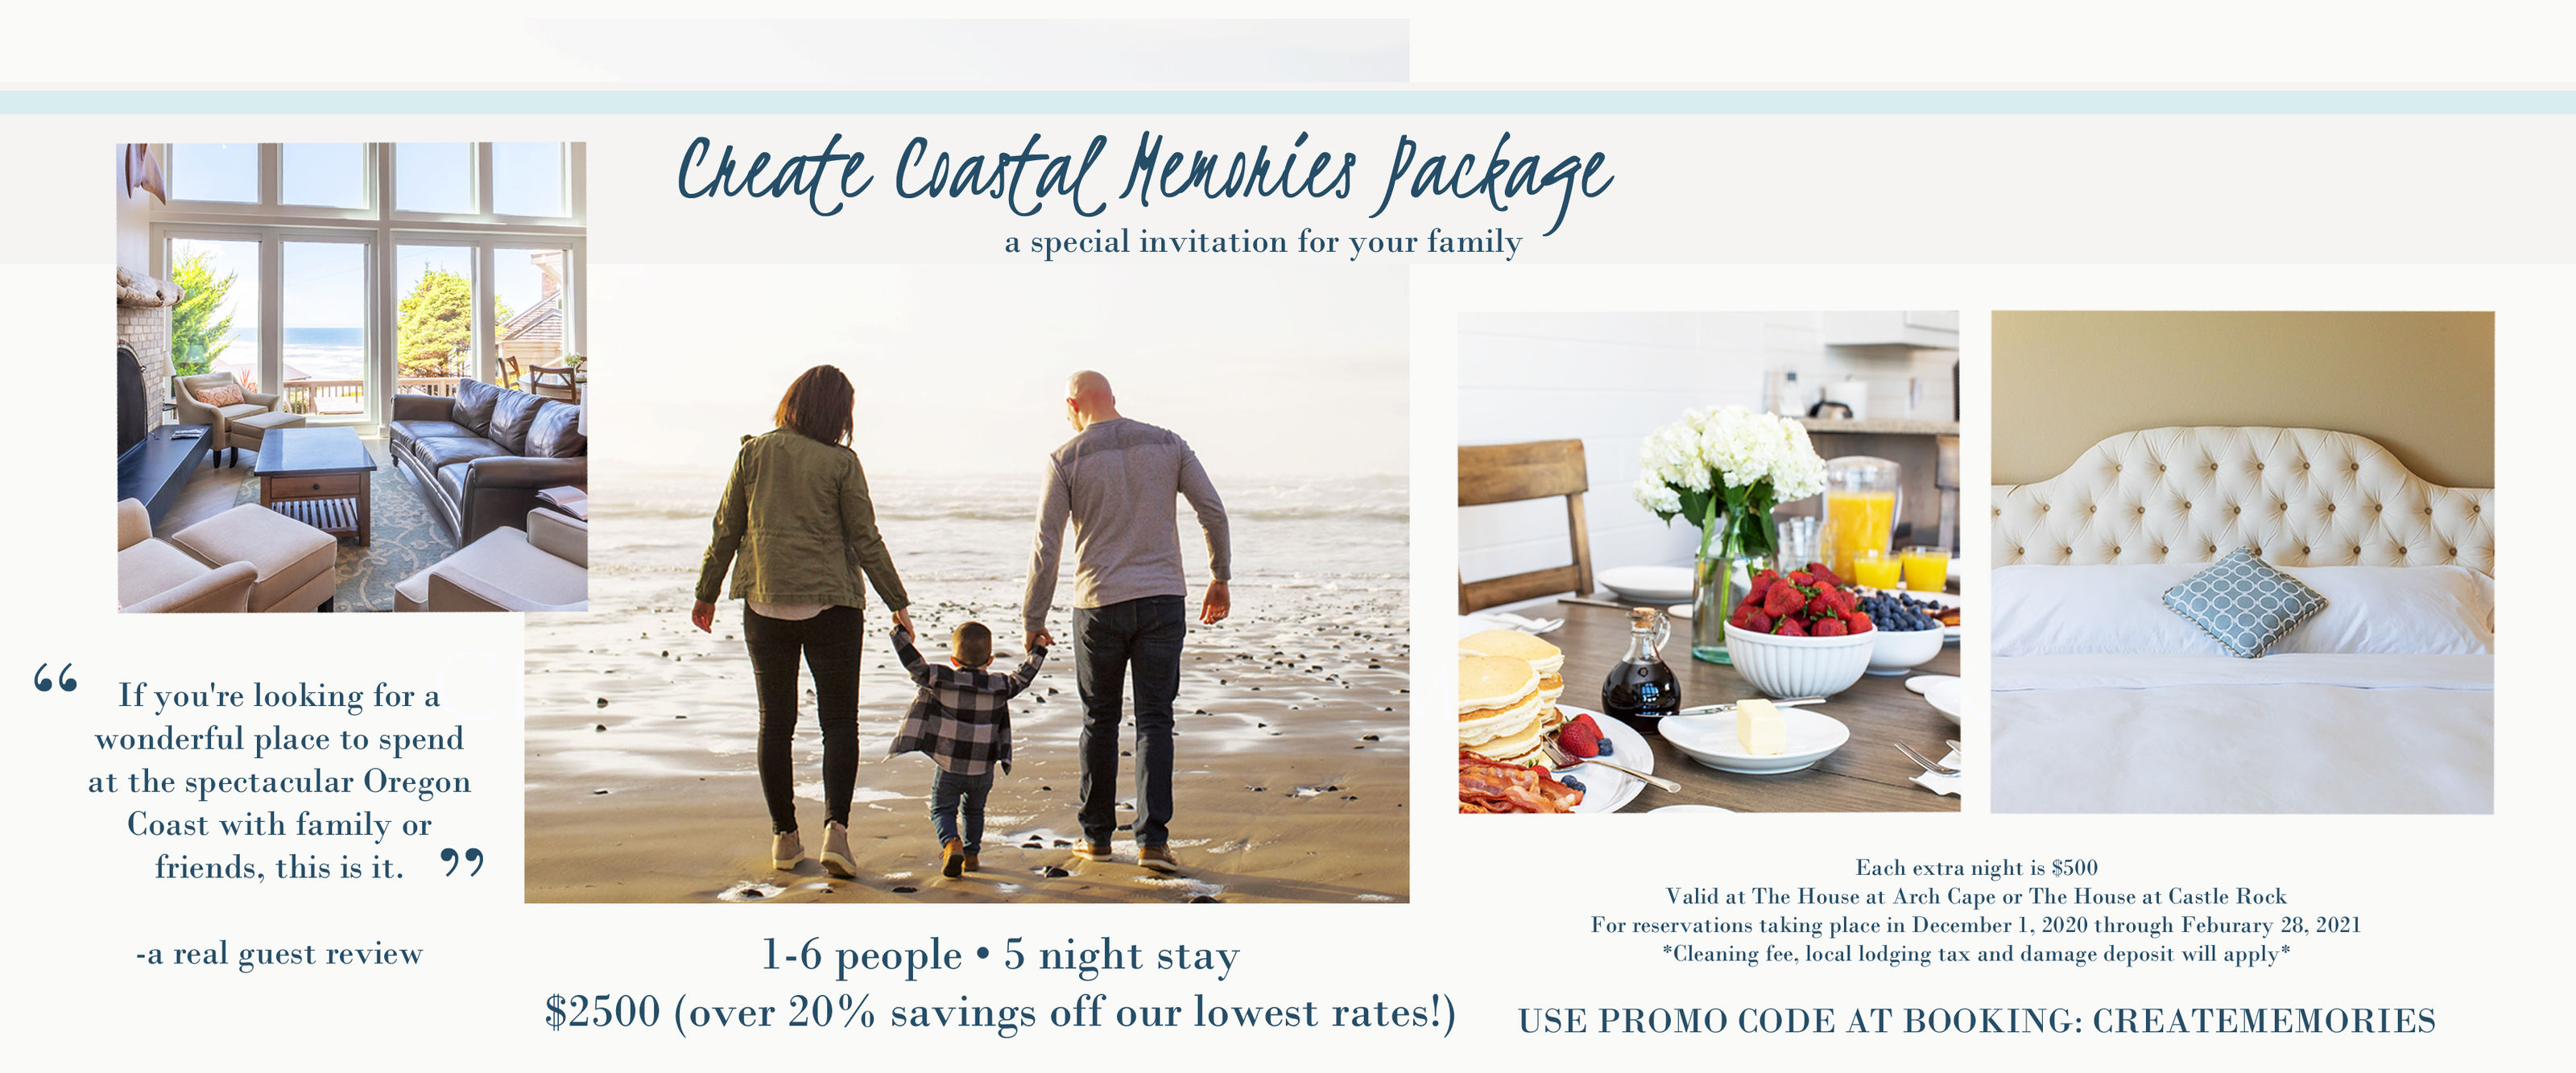 Create Coastal Memories Package